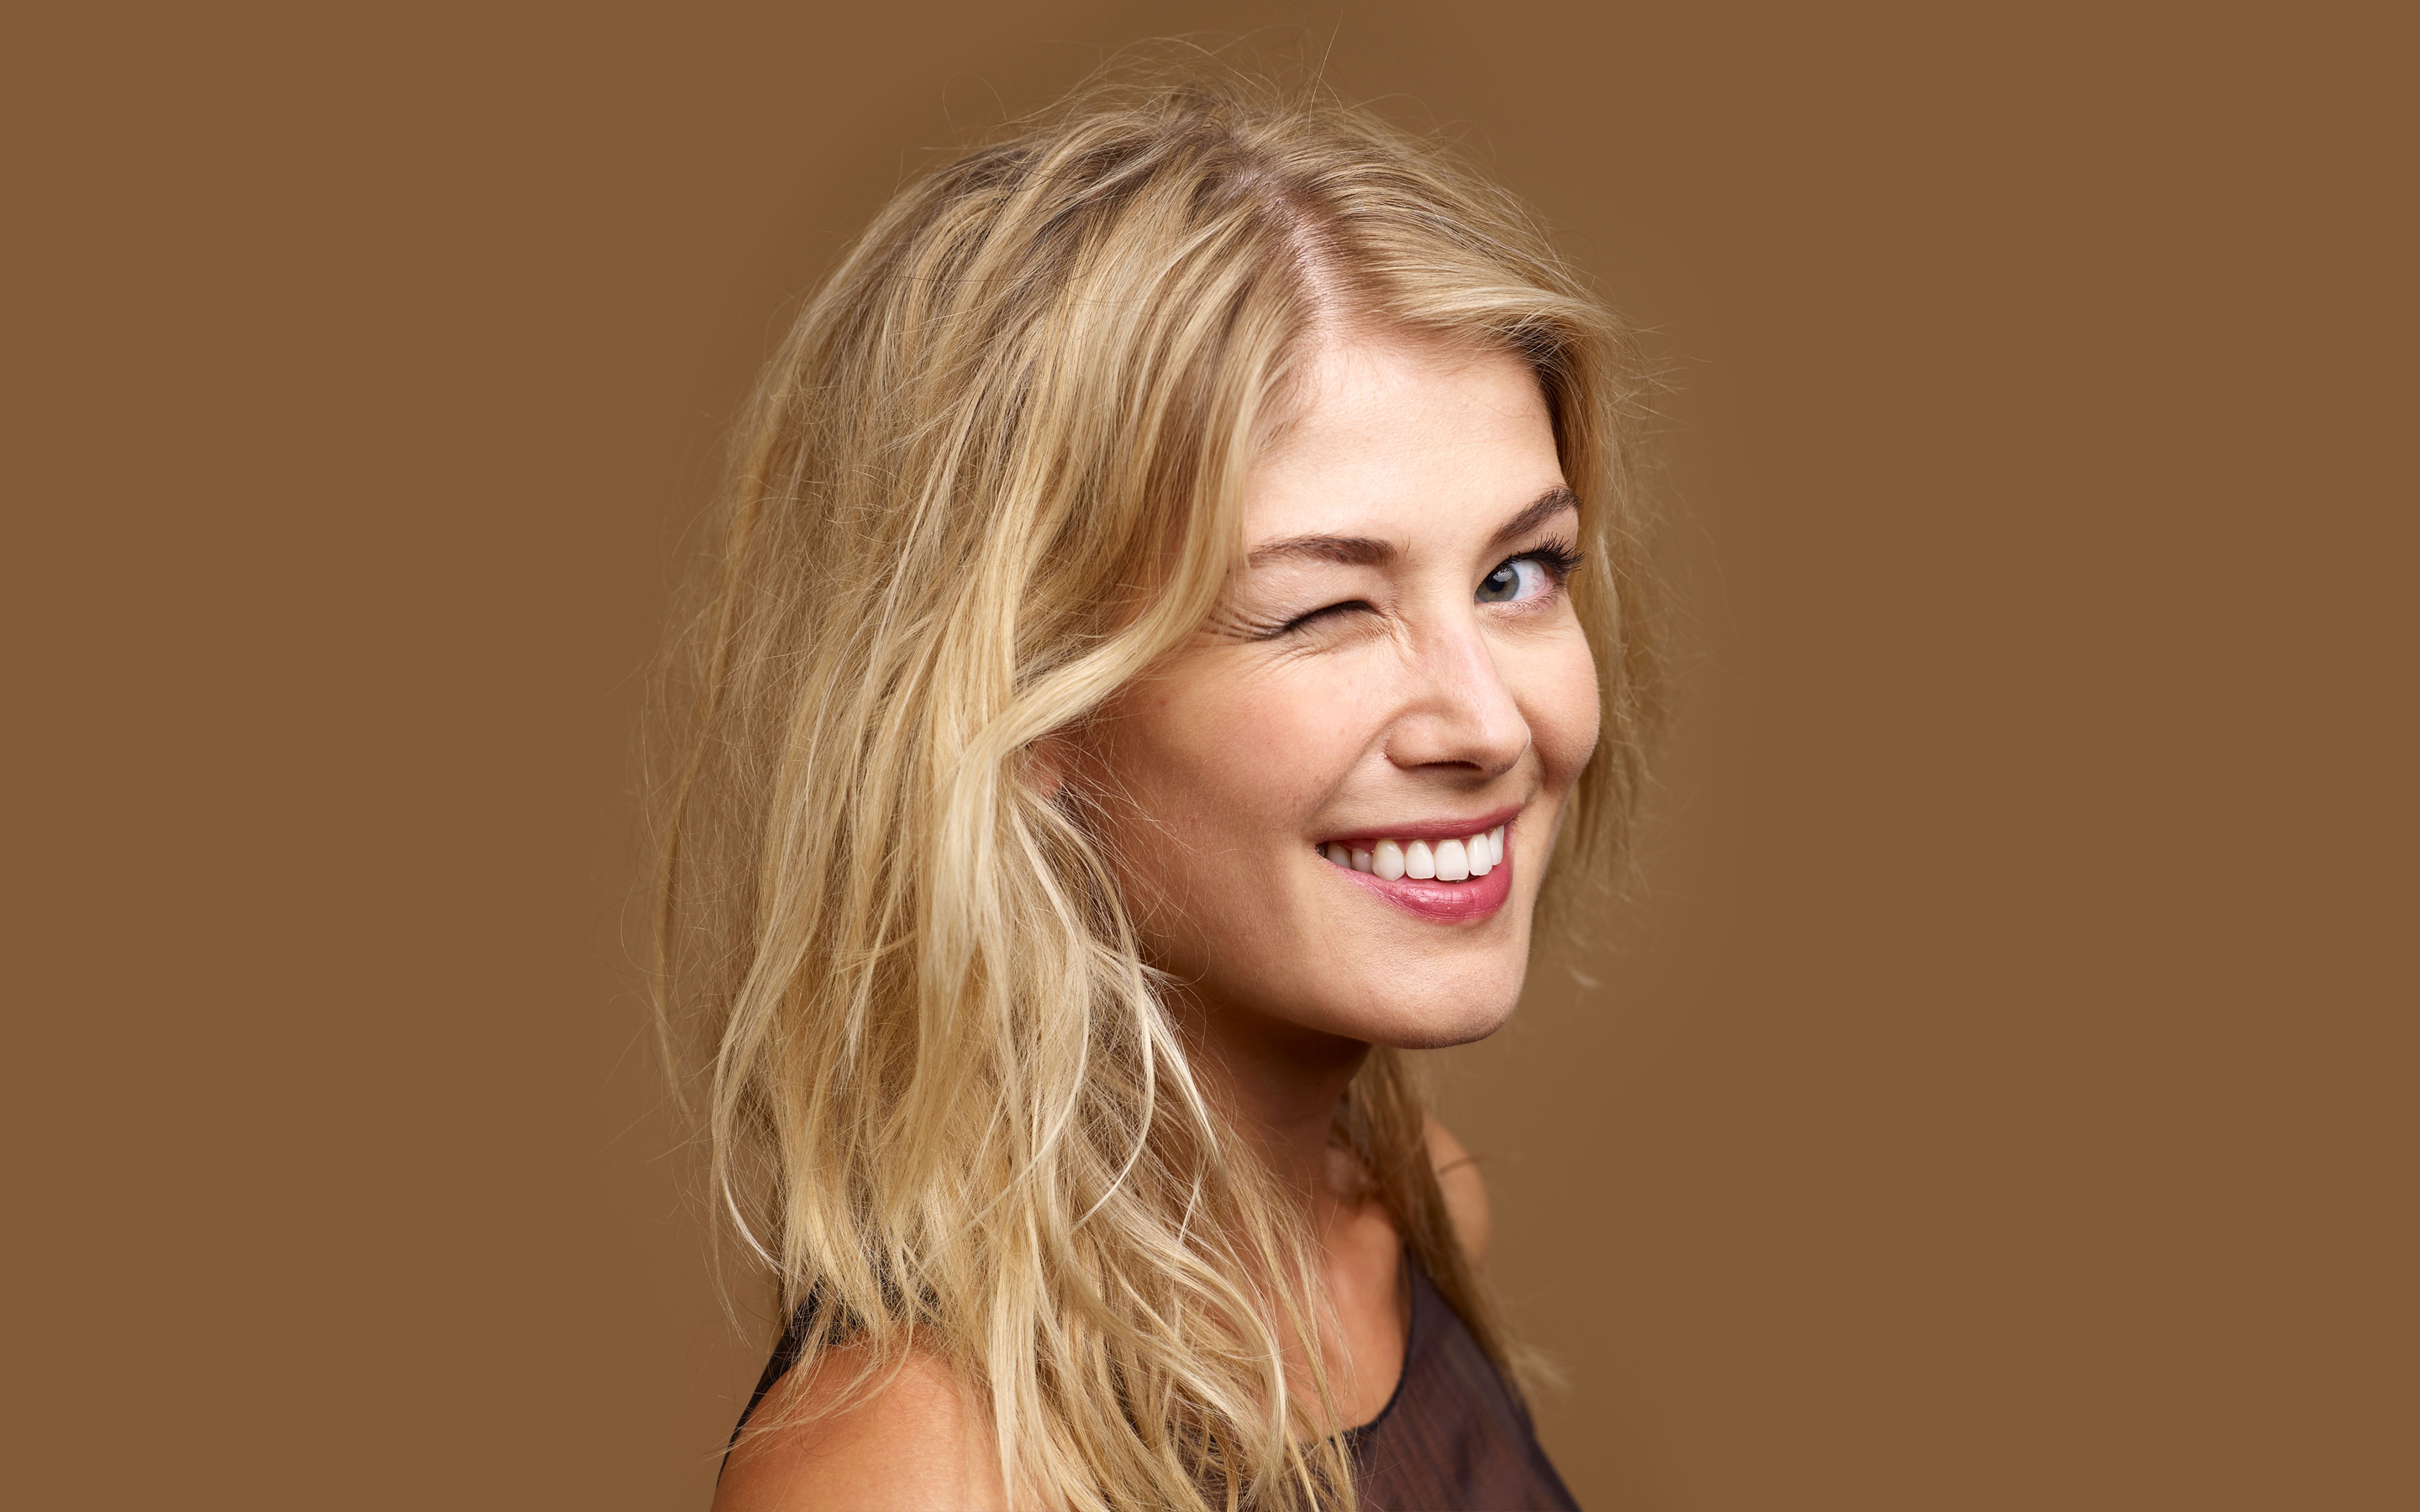 2880x1800 - Rosamund Pike Wallpapers 11